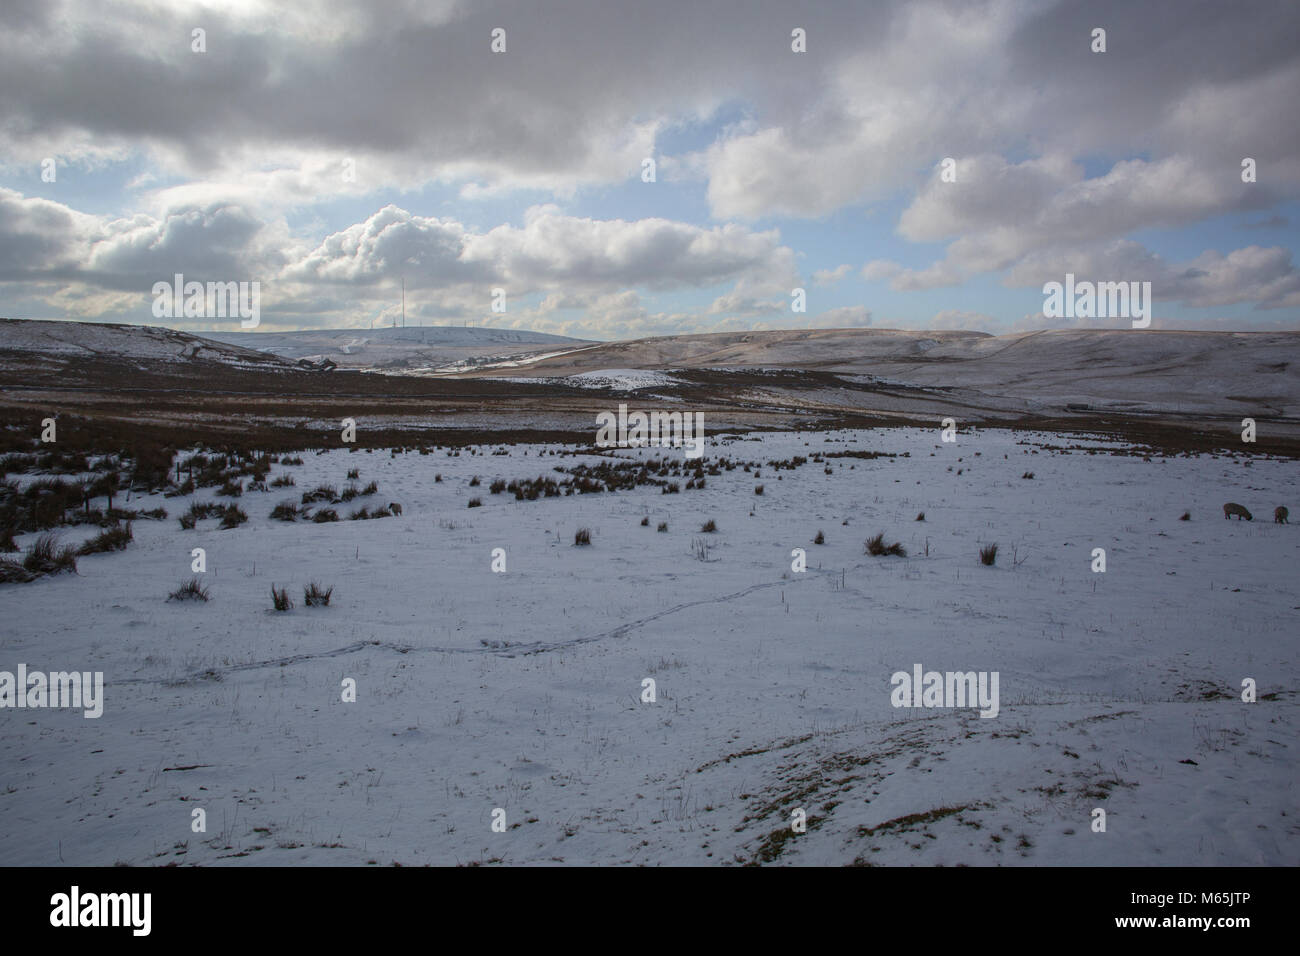 Darwen Moor and surroundings. Part of the West Pennine Moors a Site of Special Scientific Interest. - Stock Image